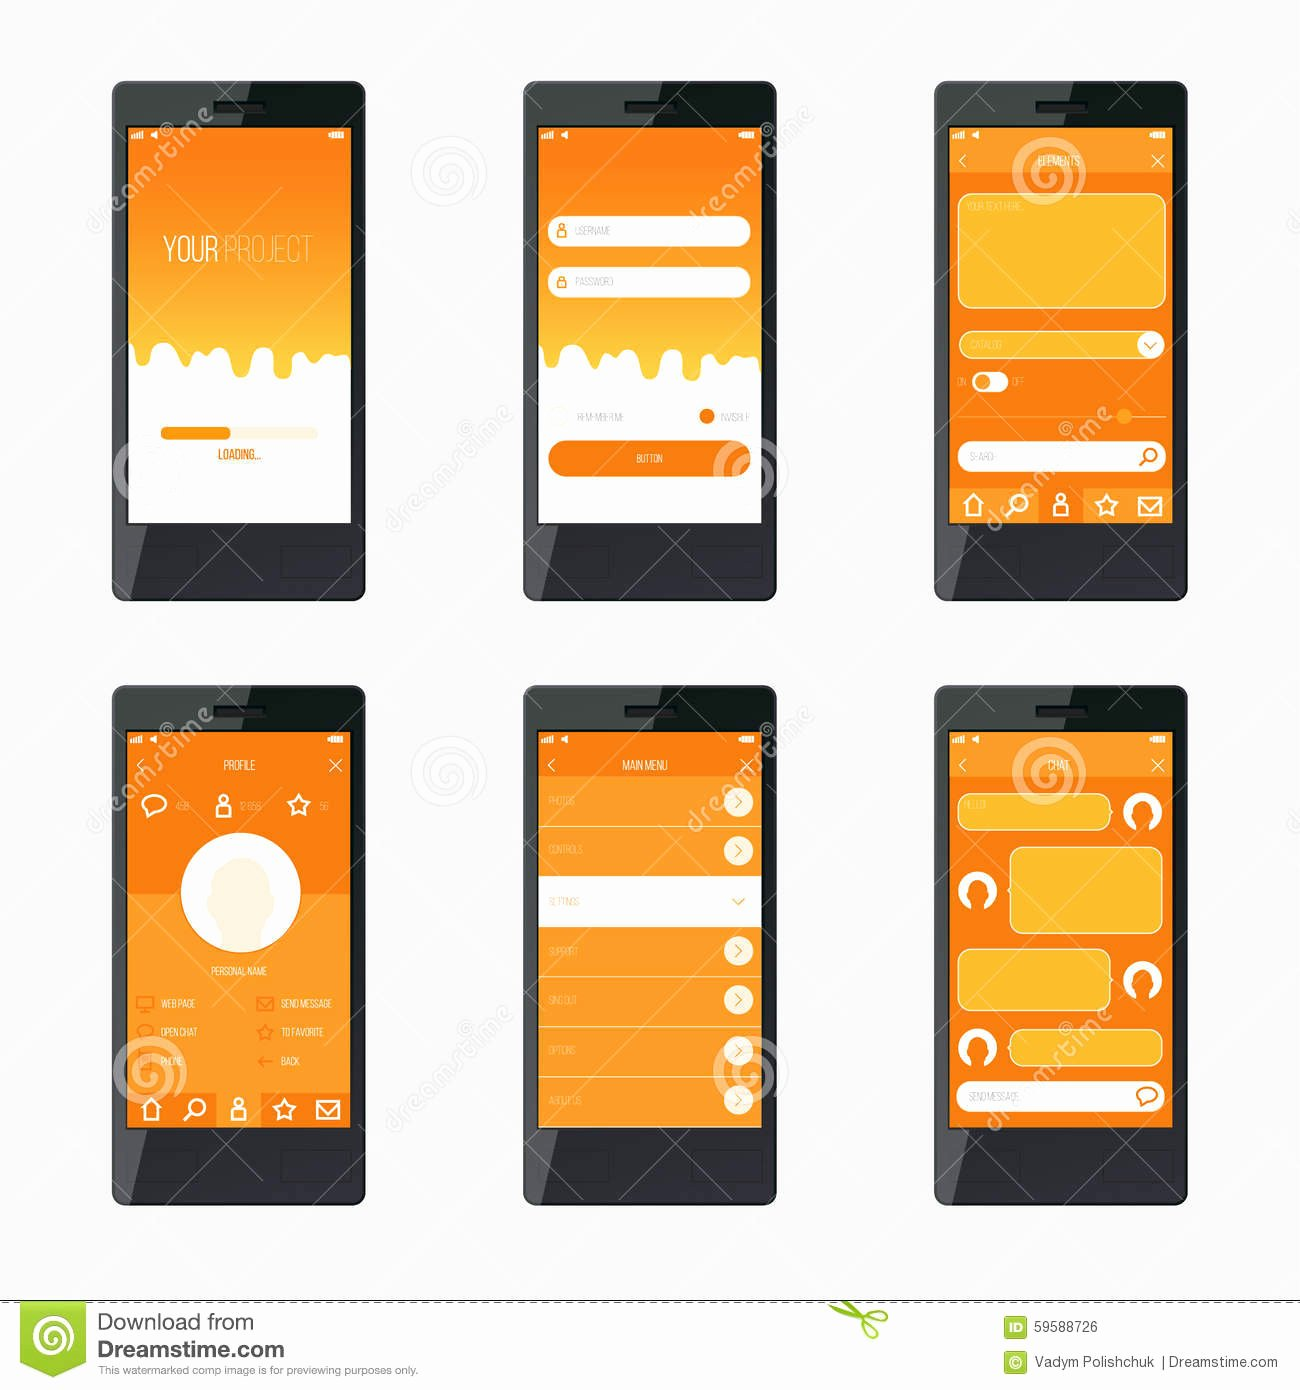 Mobile Apps Design Template Inspirational Template Mobile Application Interface Design Stock Vector